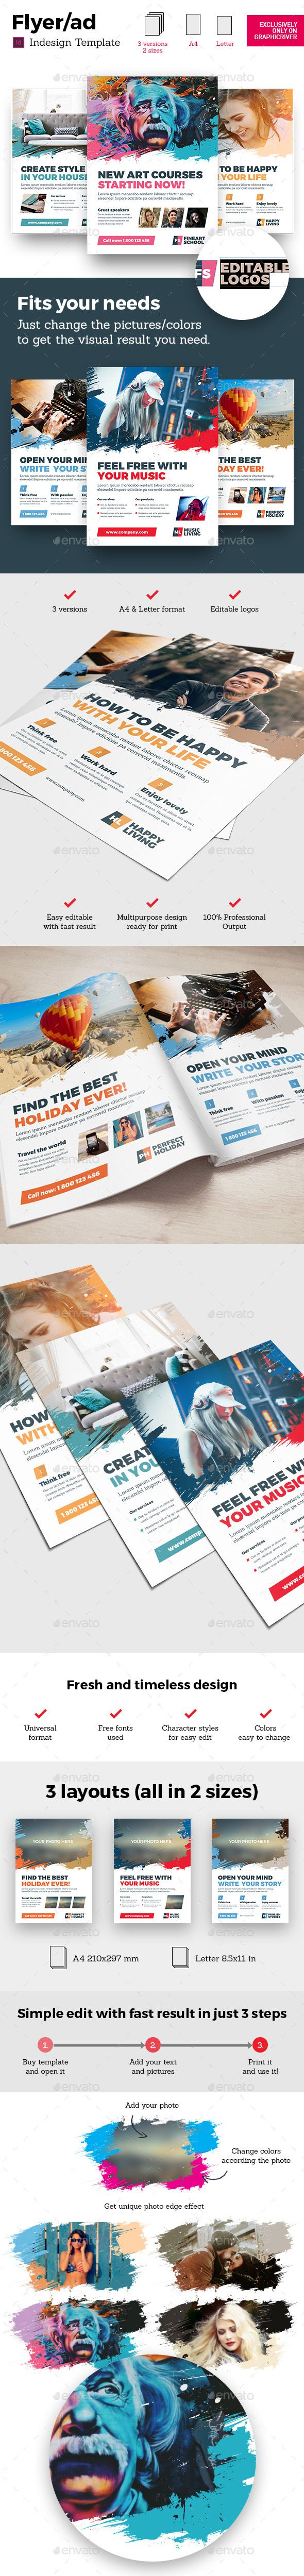 Art Business Universal Flyer/ad 3x InDesign and Photoshop Brush ...